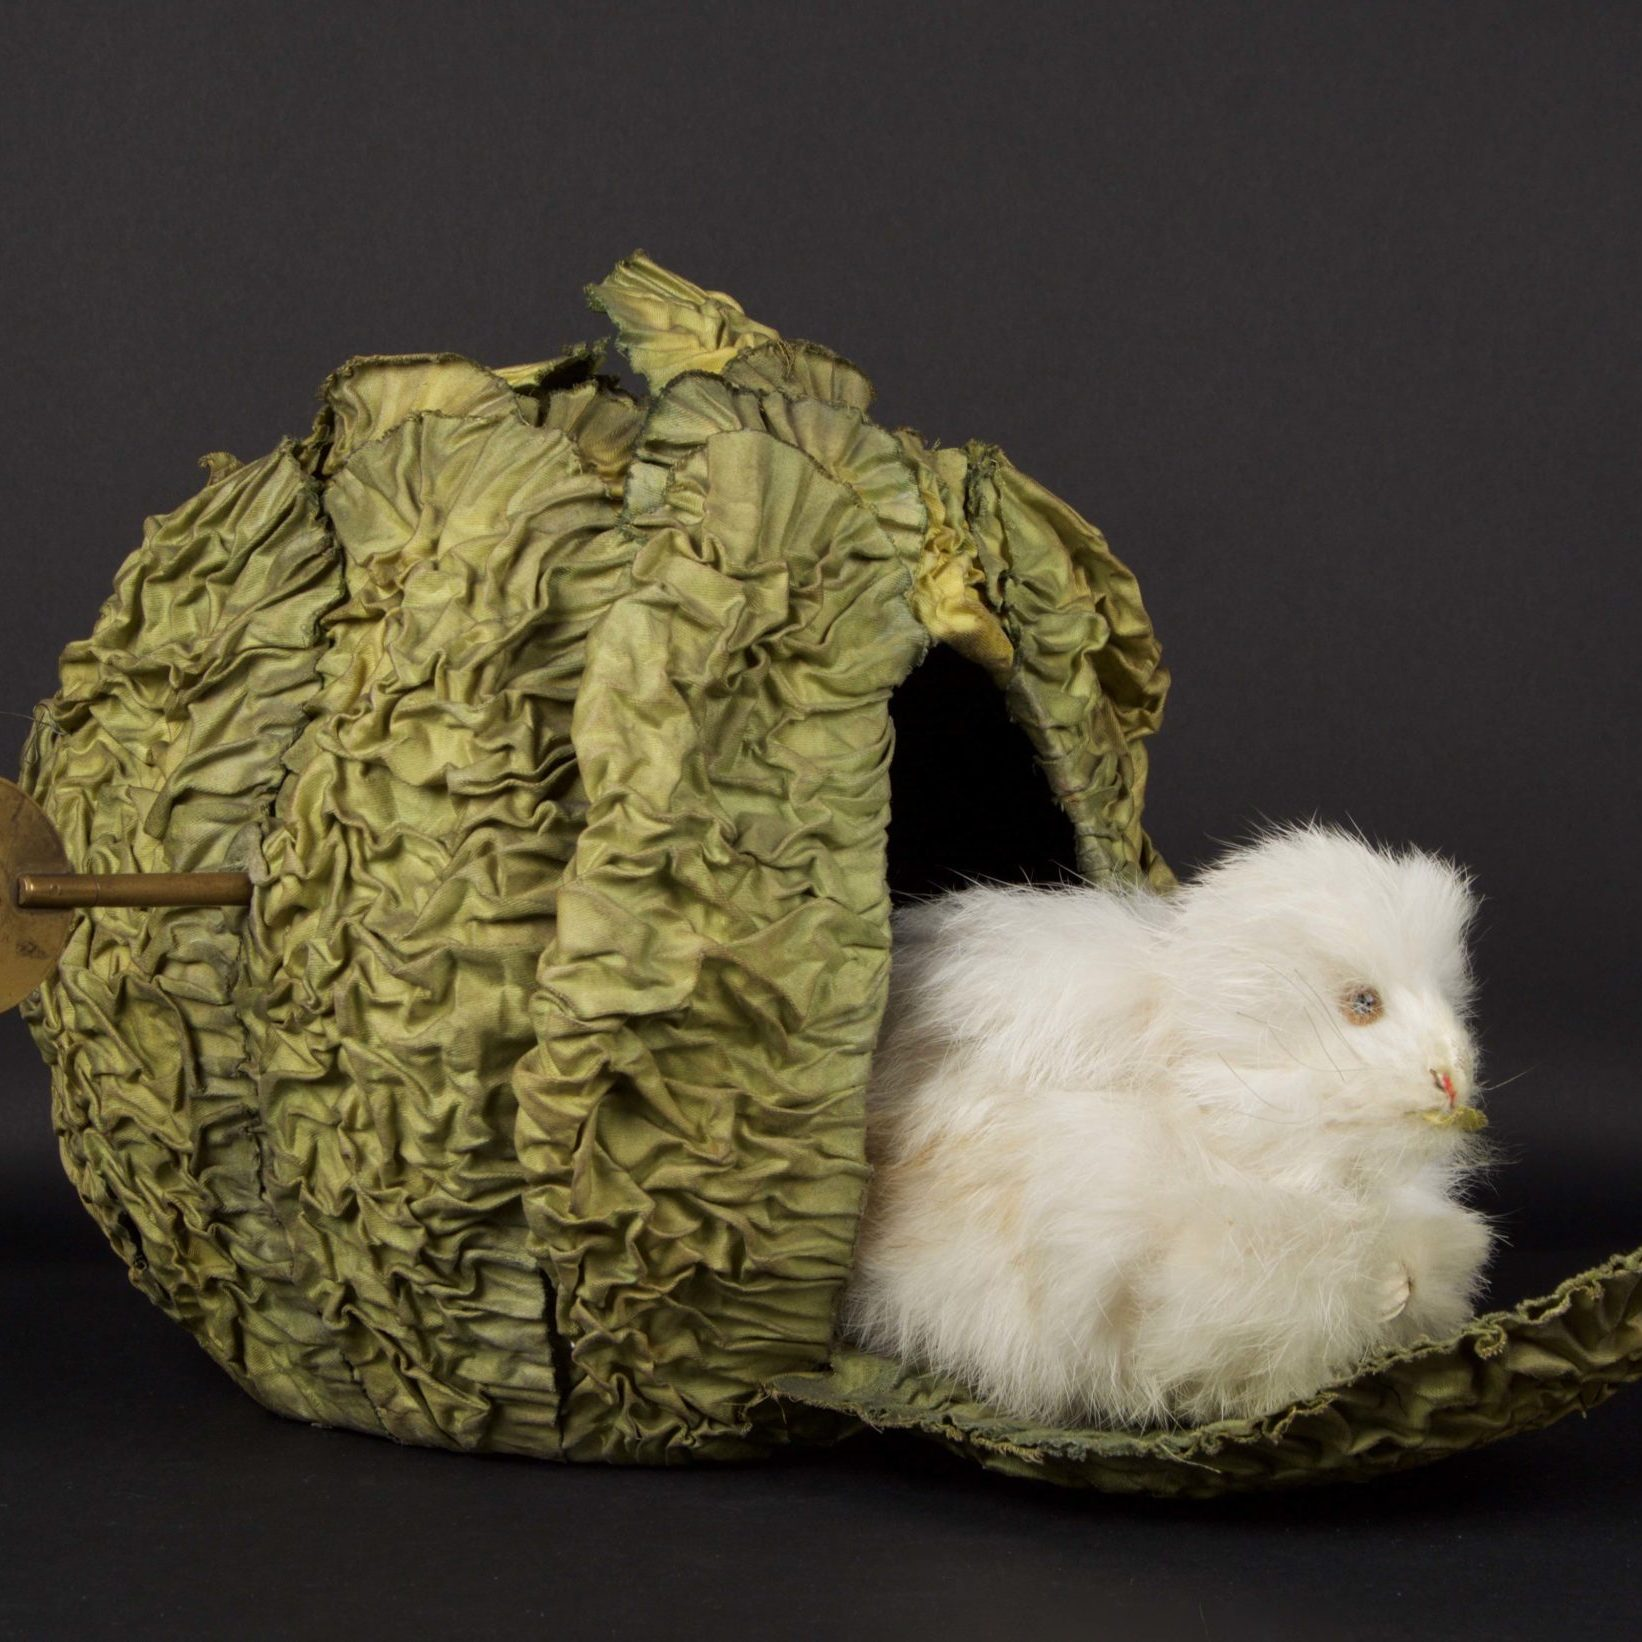 Musical box in the shape of a rabbit in a cabbage